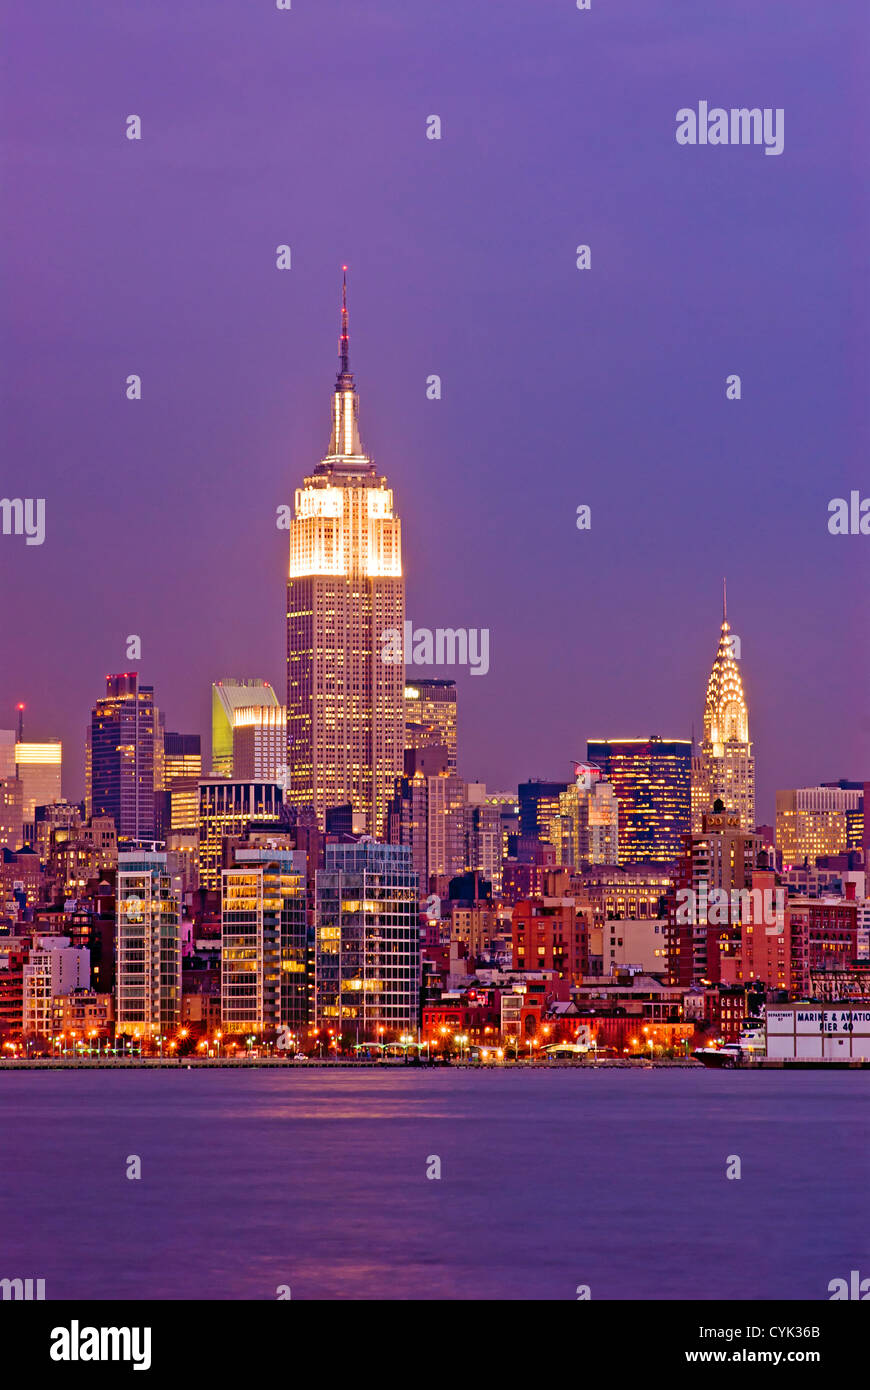 Manhattan Empire State Building Chrysler Building  the Hudson River, New York City Stock Photo